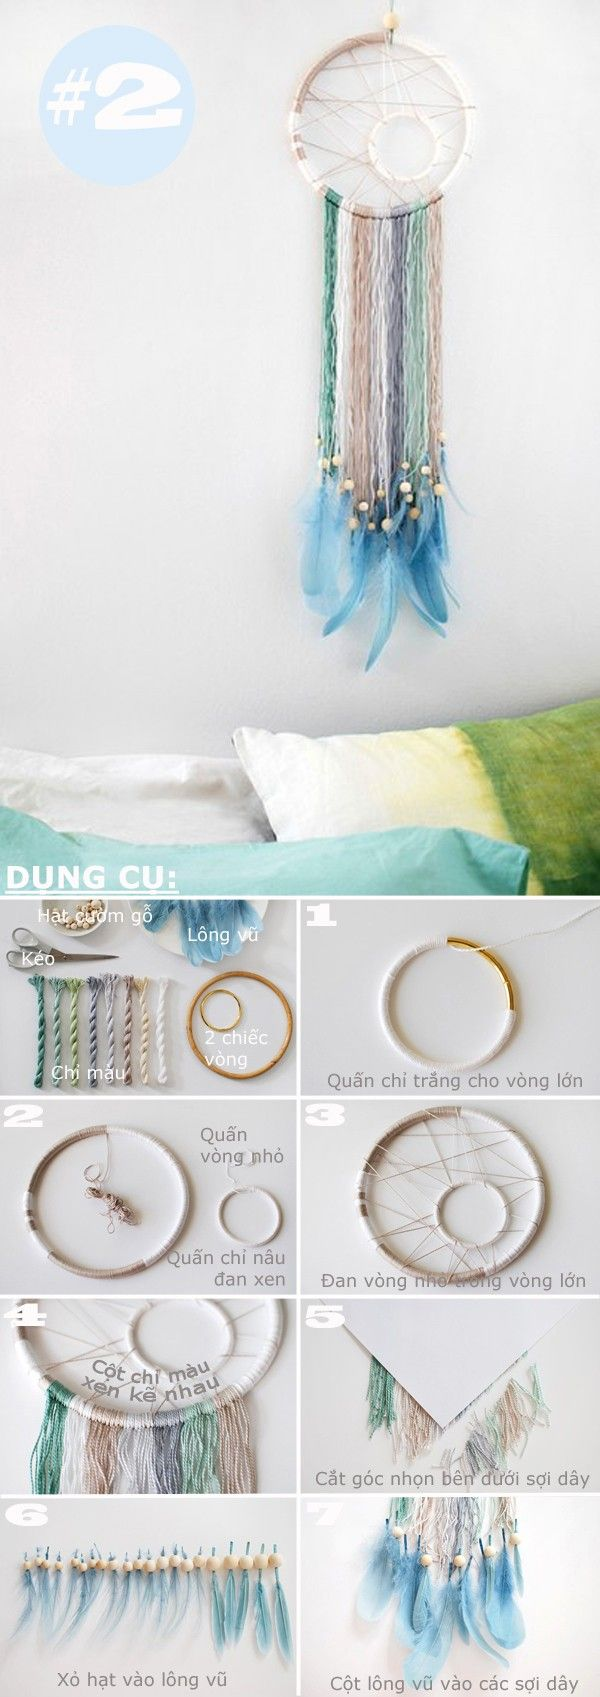 198 best anniv nina images on Pinterest | Dream catcher, Craft and ...